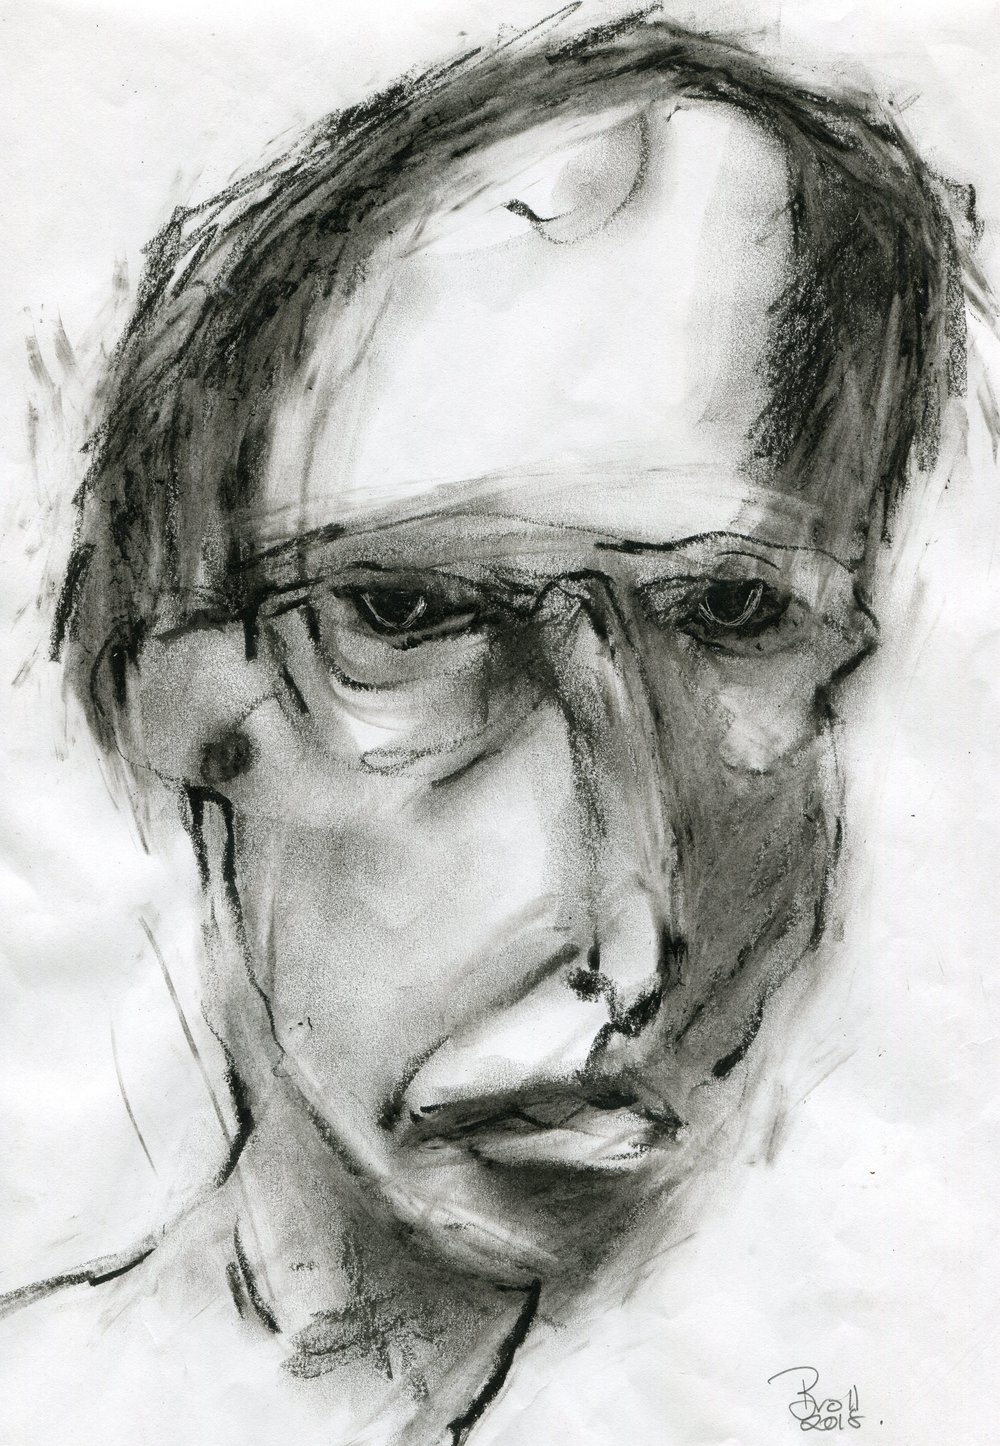 83b  Terri Broll  Just a boy  charcoal on paper